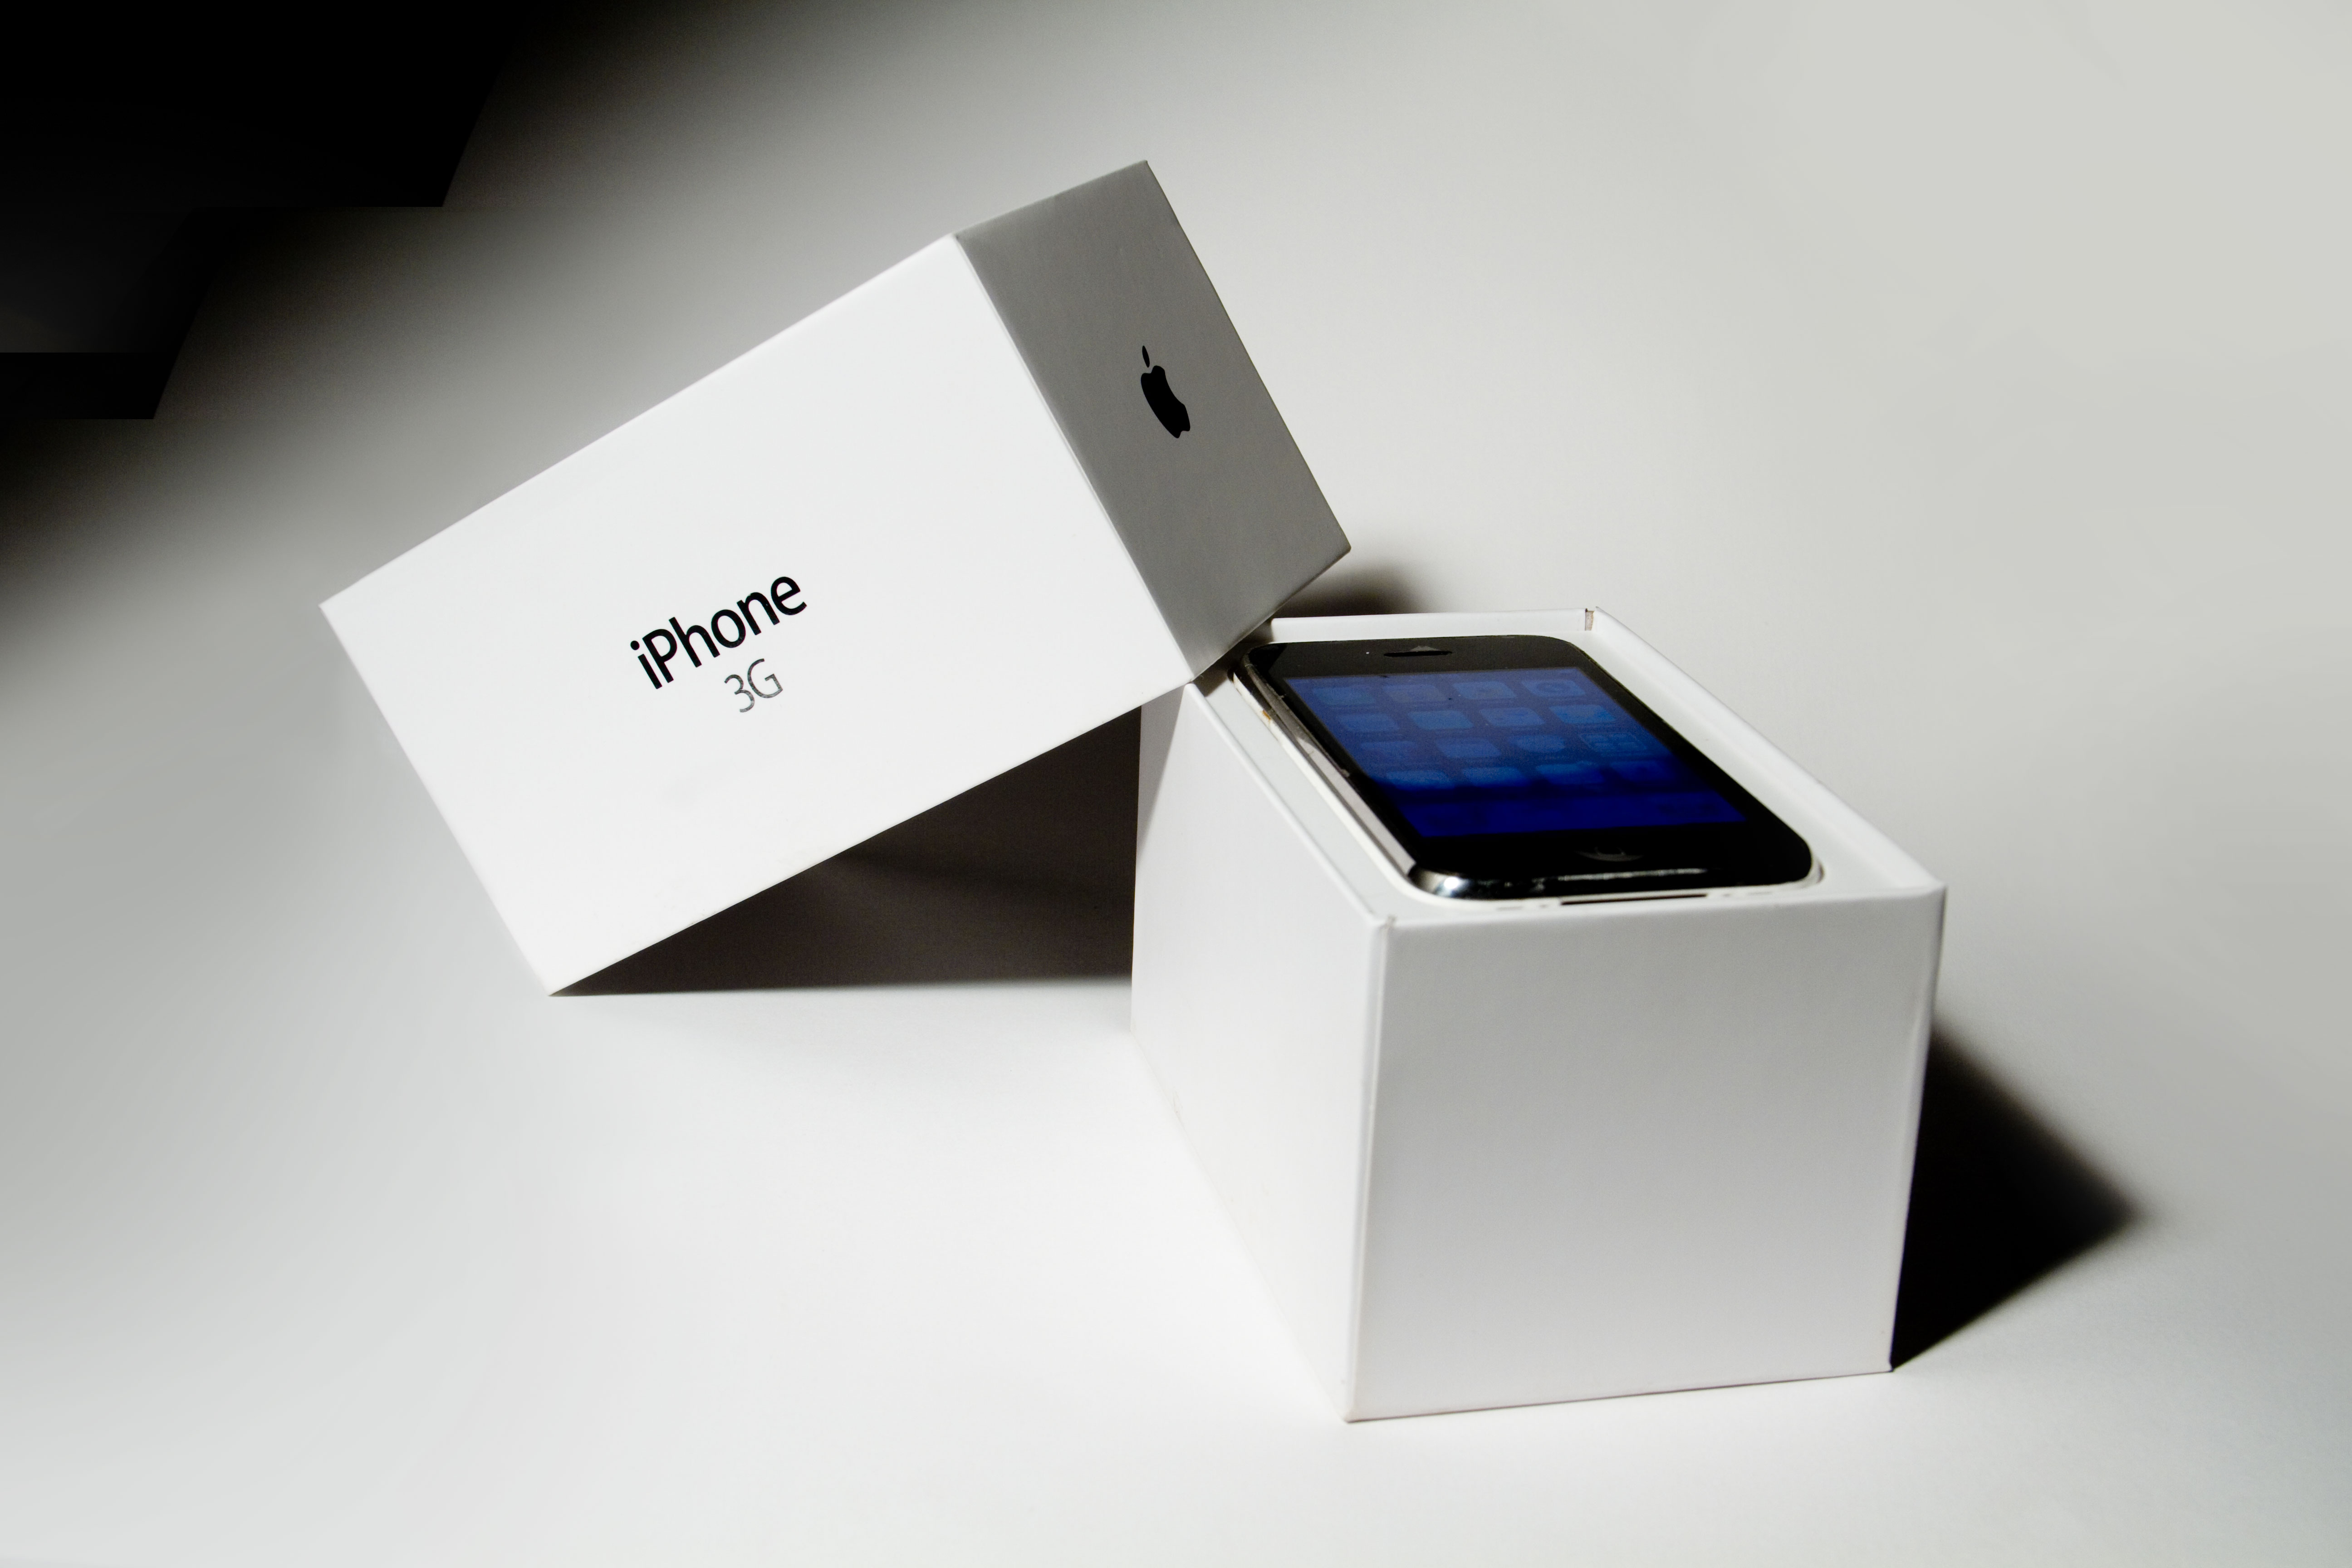 Originelle Verpackungen File:an Iphone 3g In Its Original Packaging.jpg